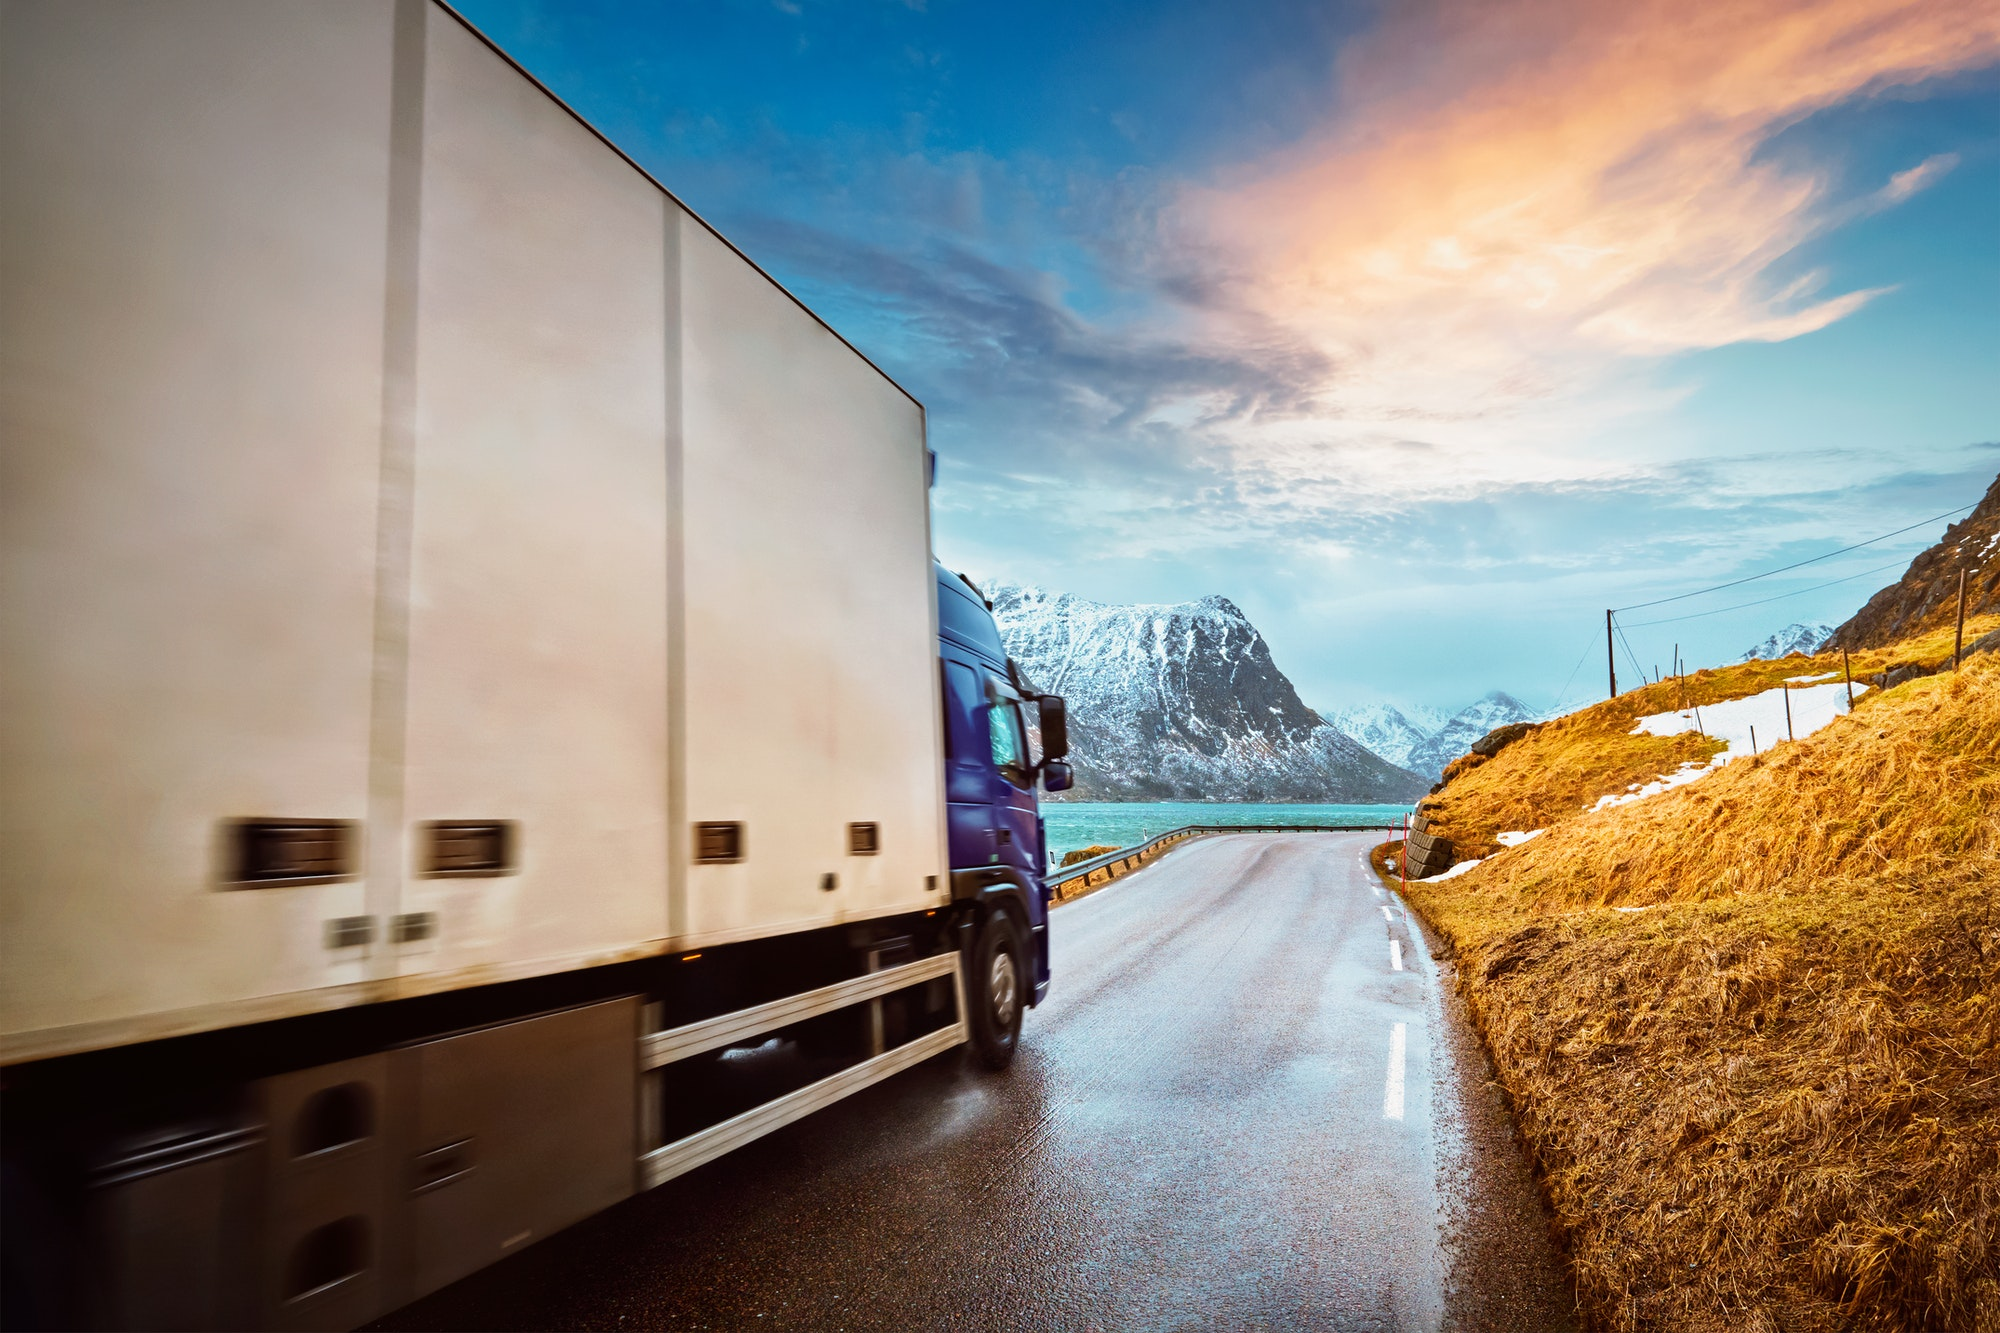 Truck on road in Norway